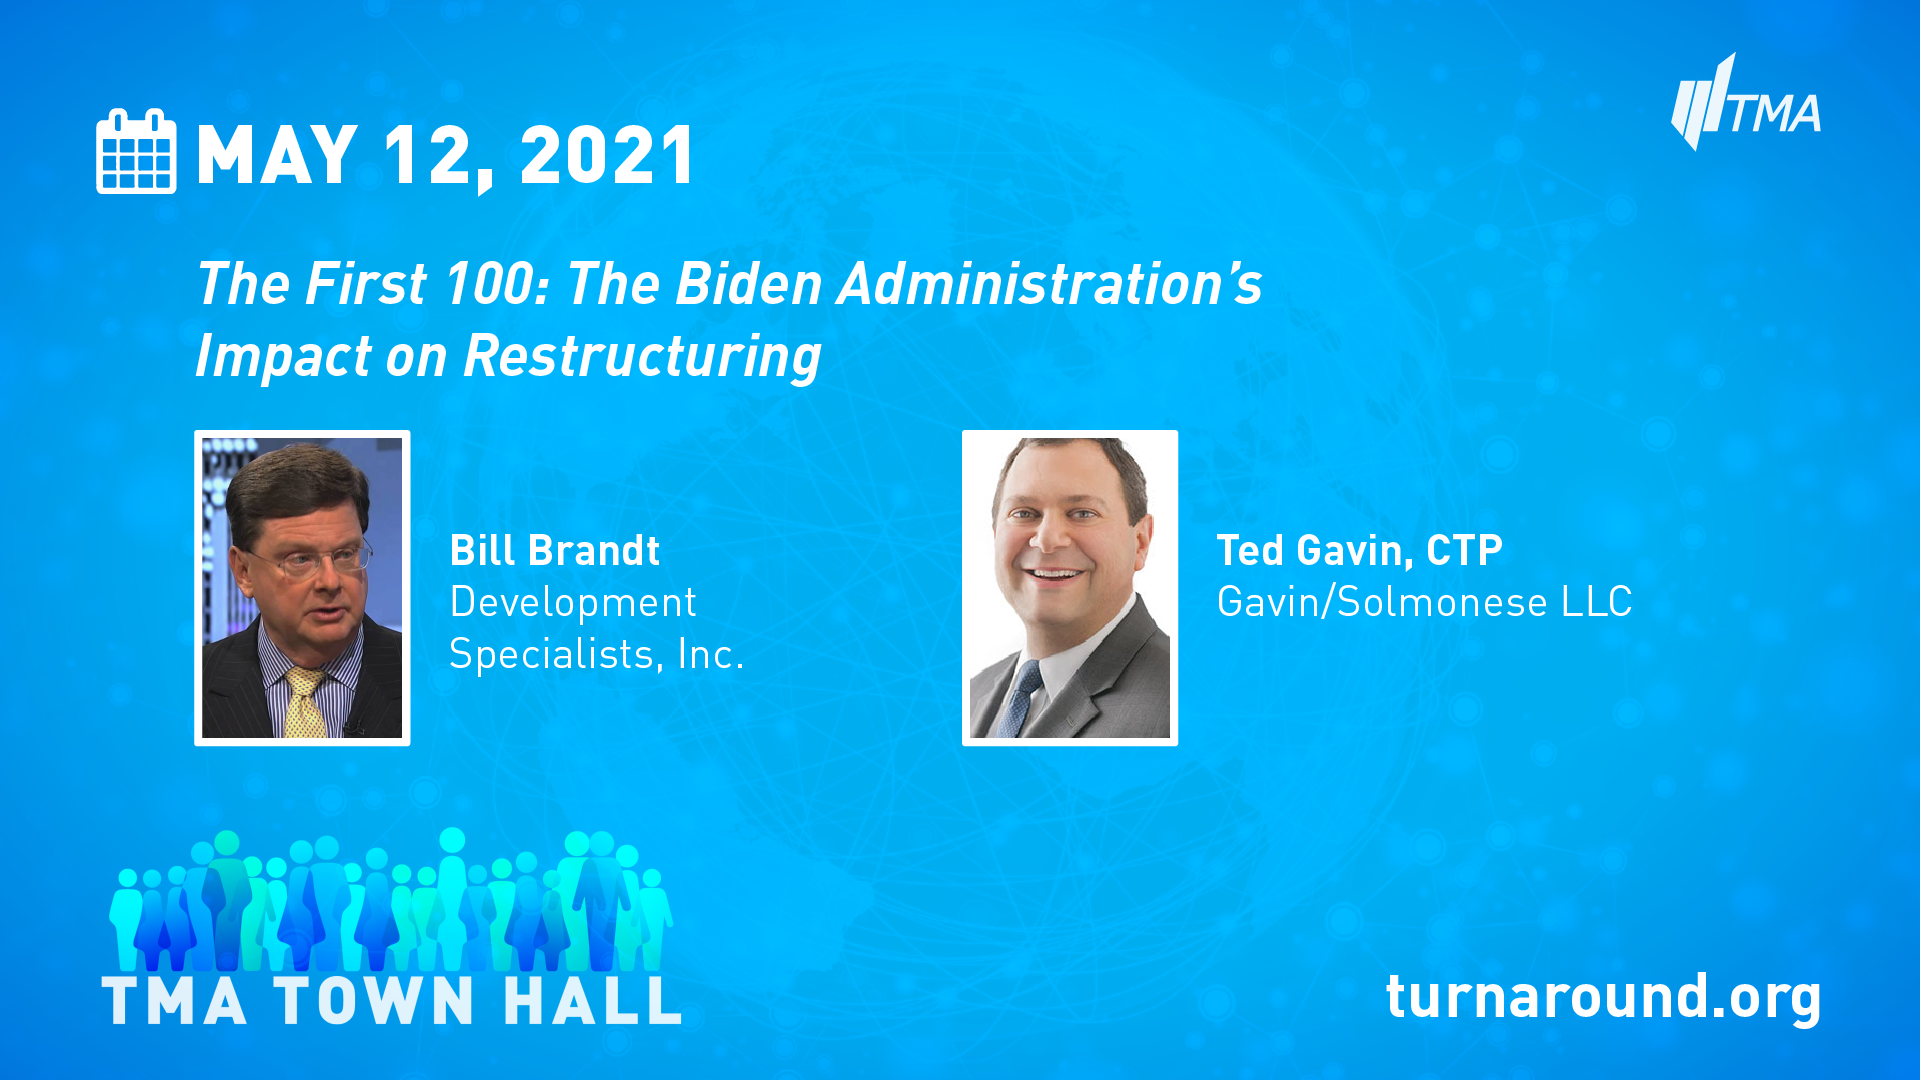 TMA Town Hall for May 12, 2021